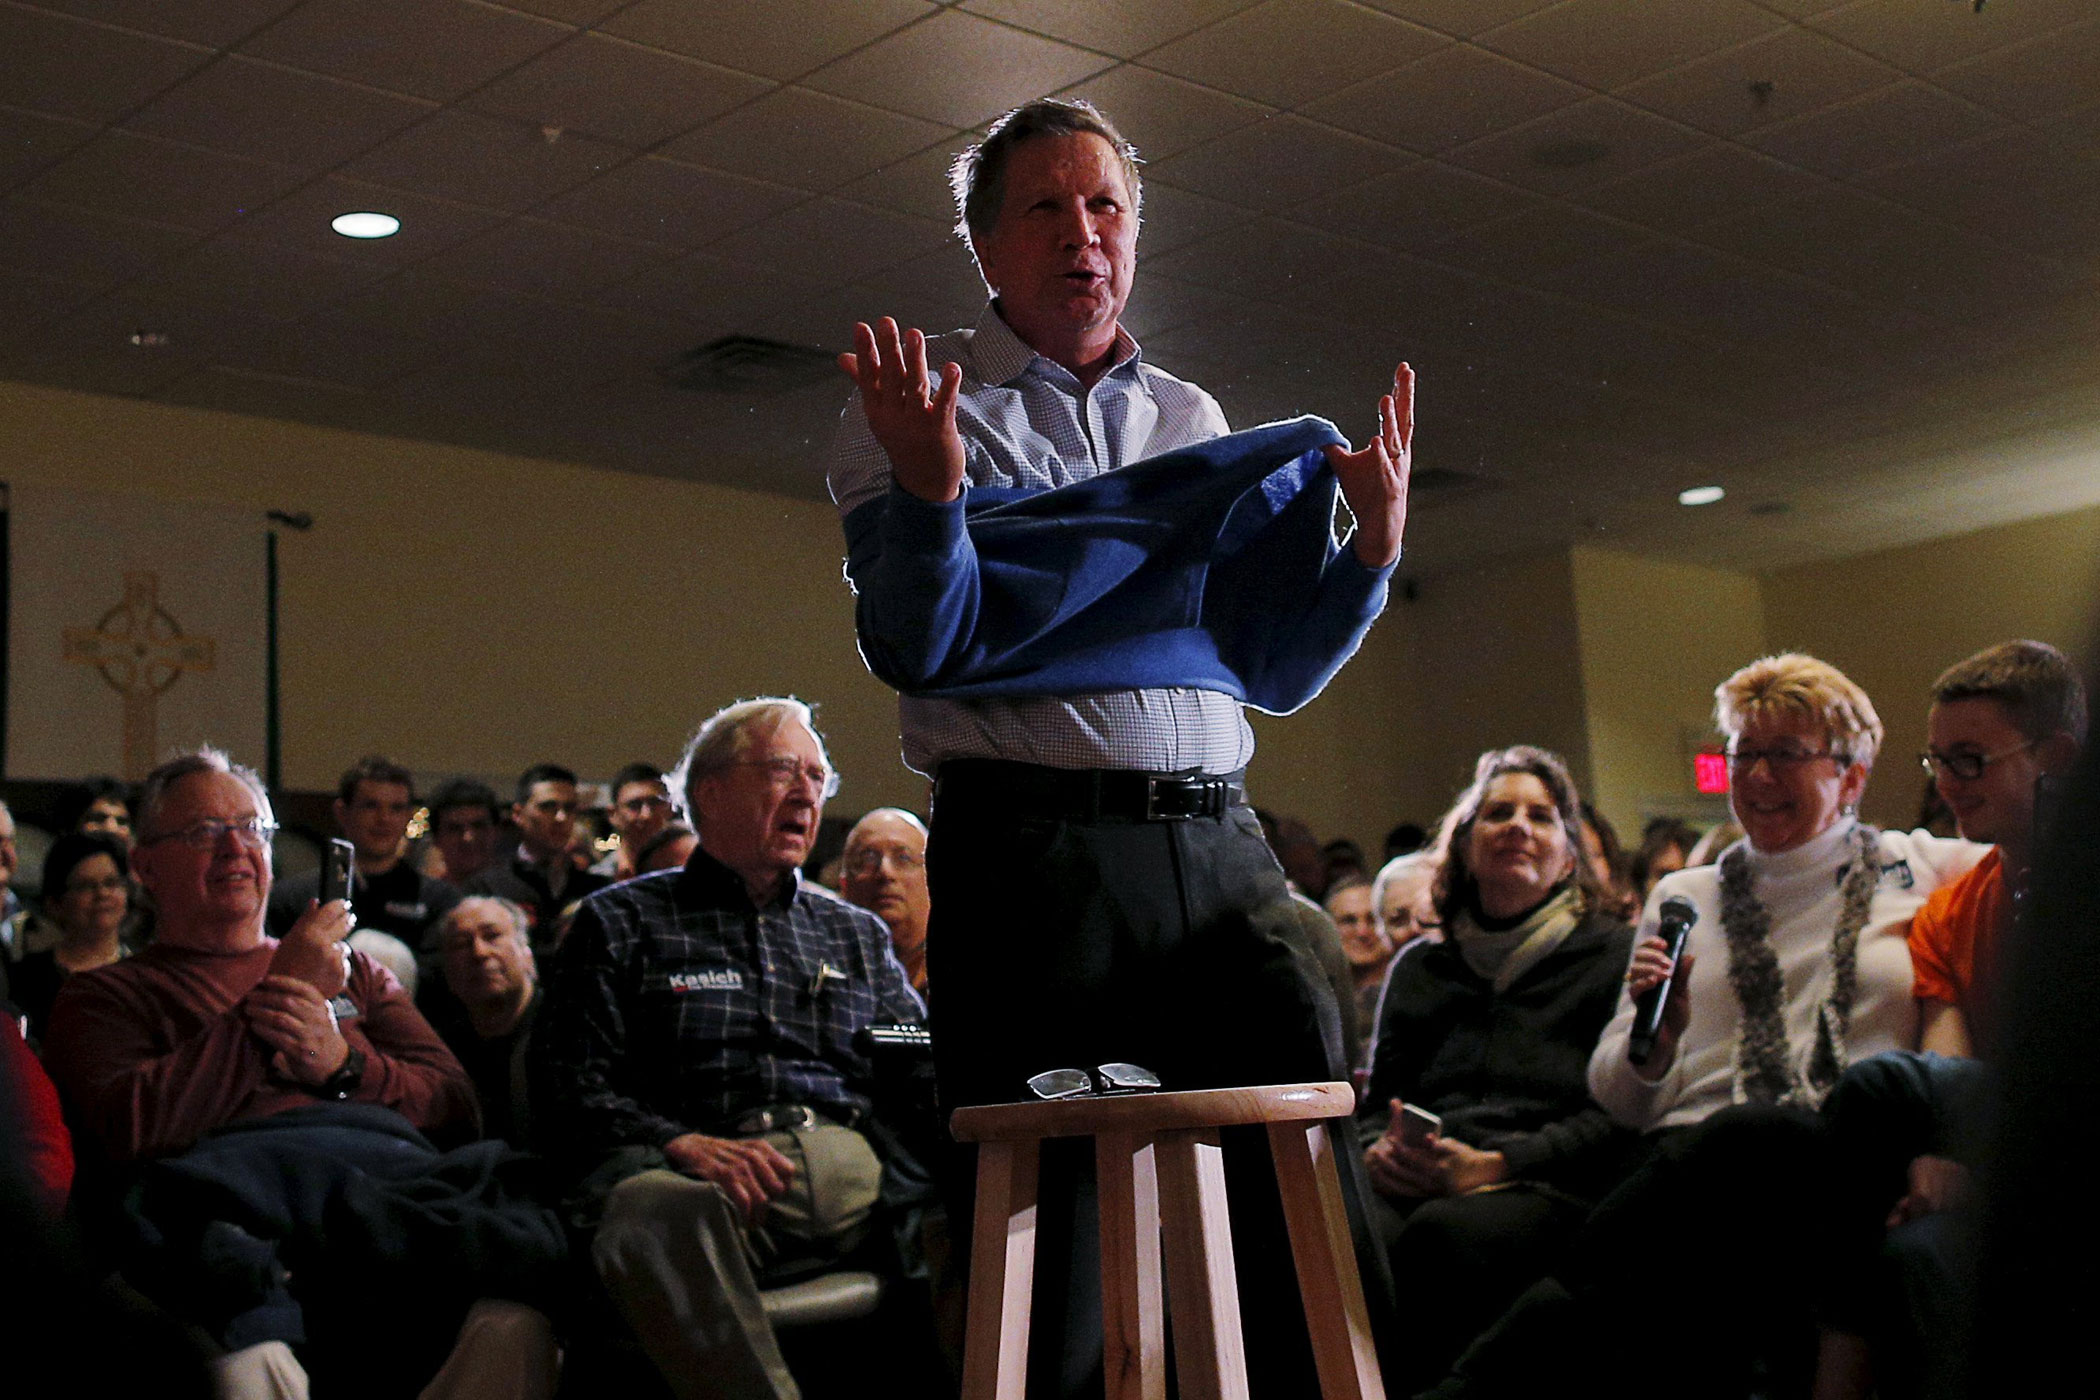 Republican presidential candidate Ohio Gov. John Kasich takes off his sweater during a campaign town hall meeting in Worcester, Mass. on Feb. 20, 2016.